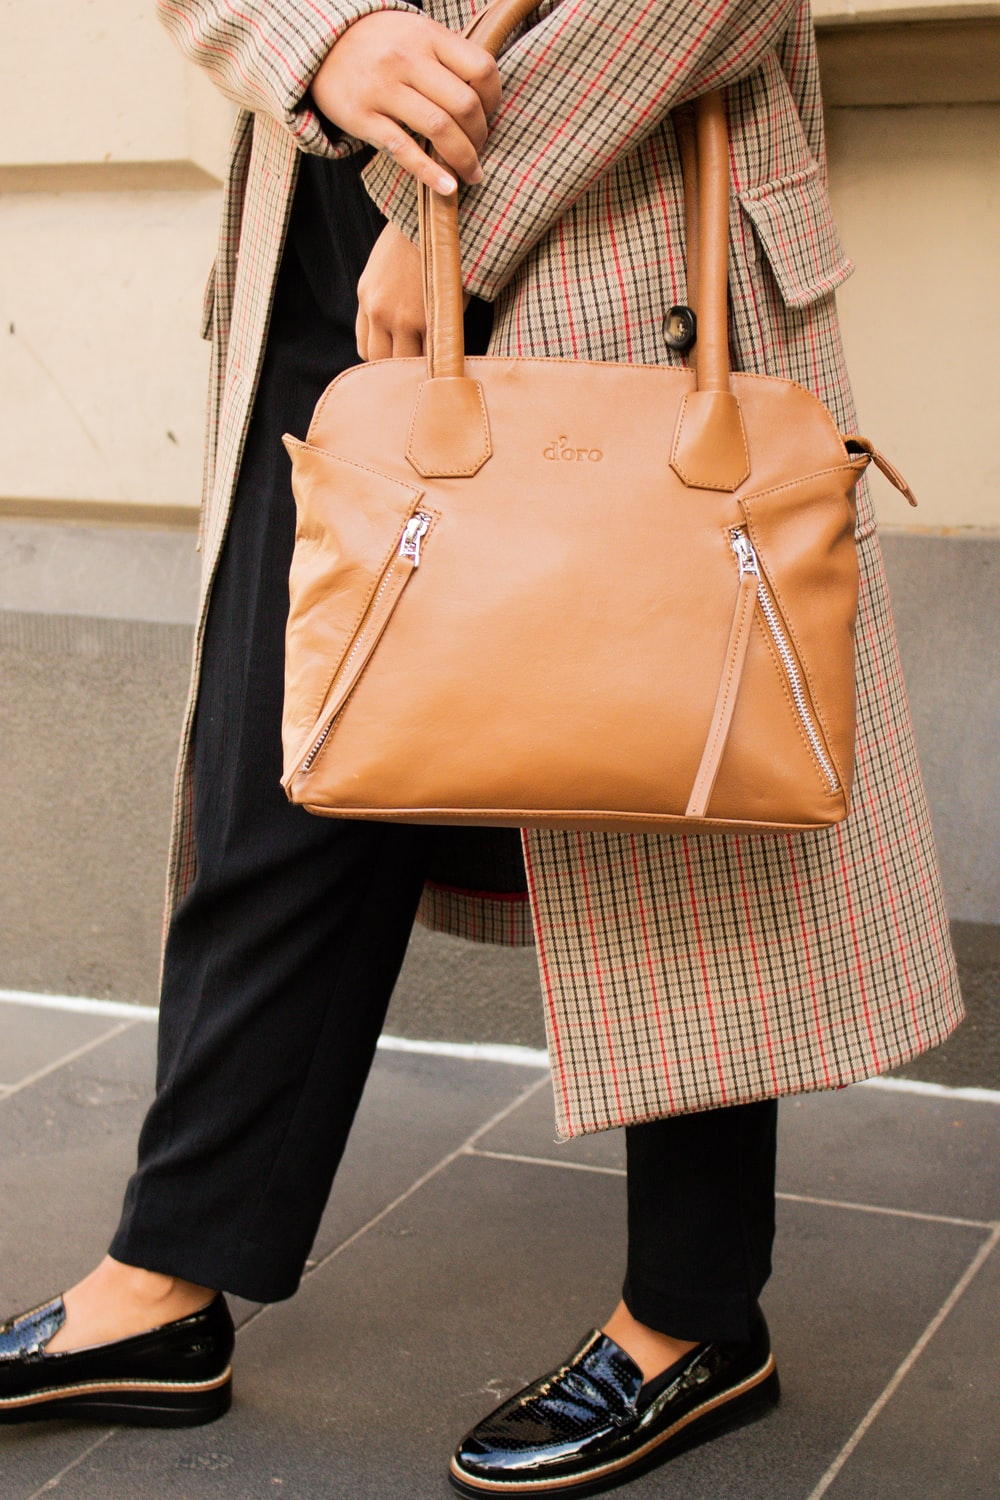 person in black pants holding brown leather handbag